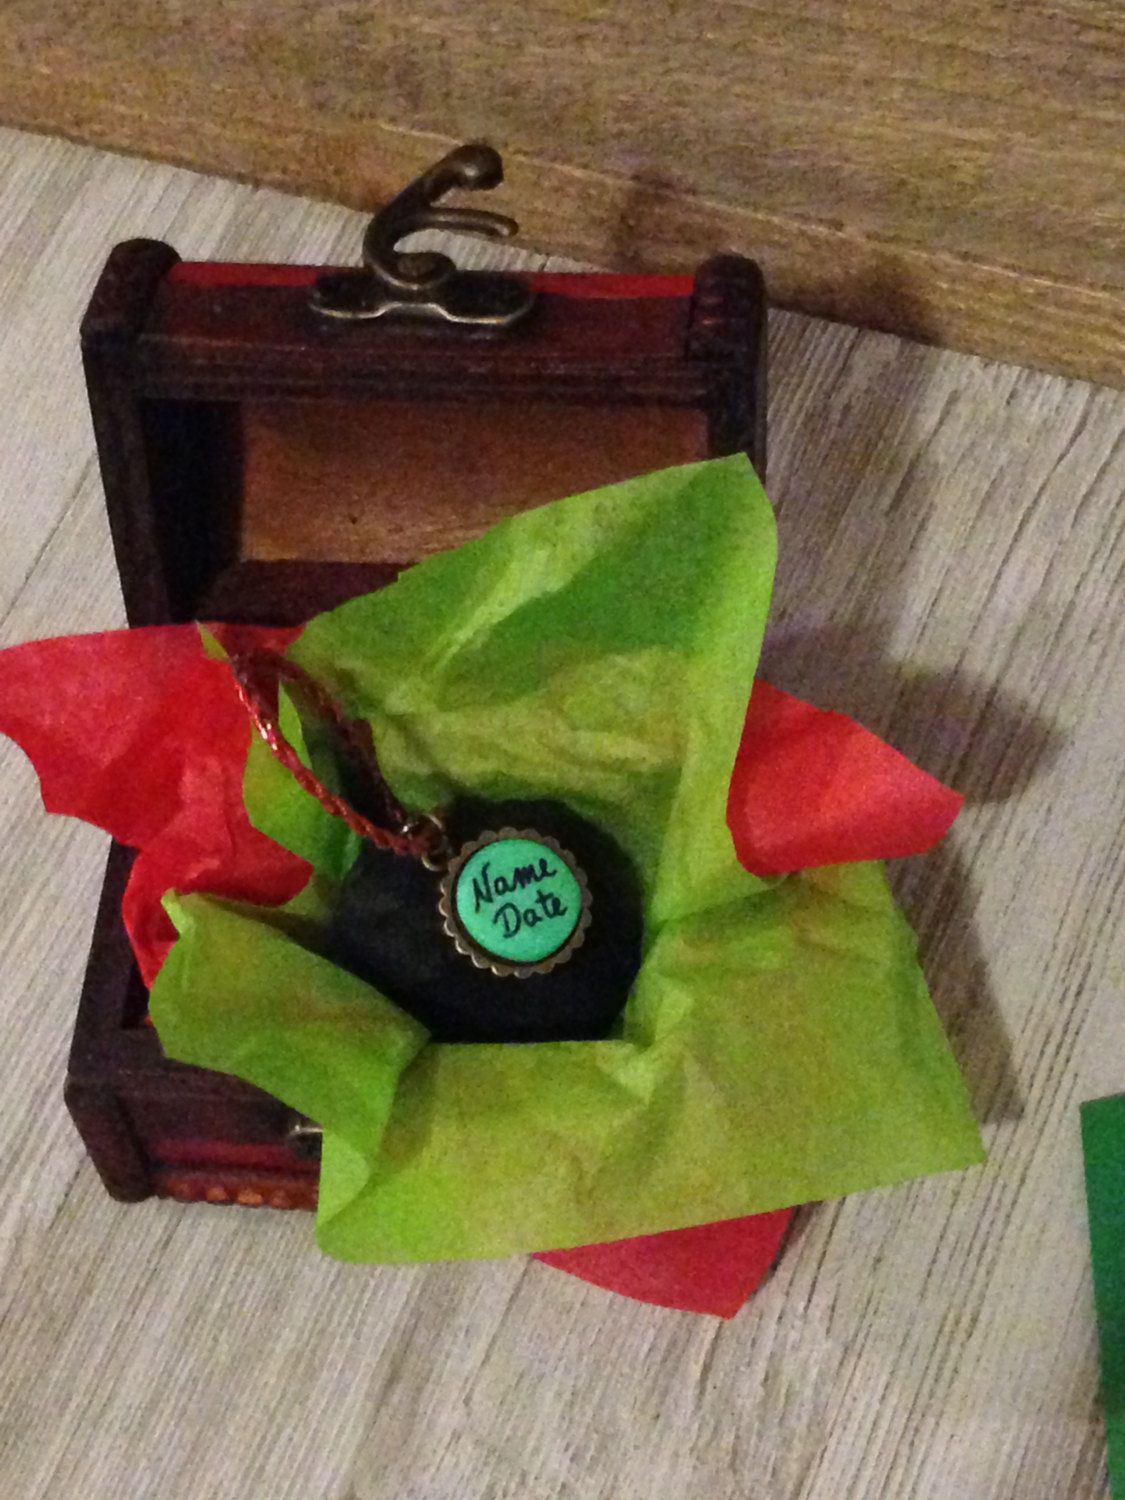 You've Been Naughty Santa Signed Lump of Coal Ornament